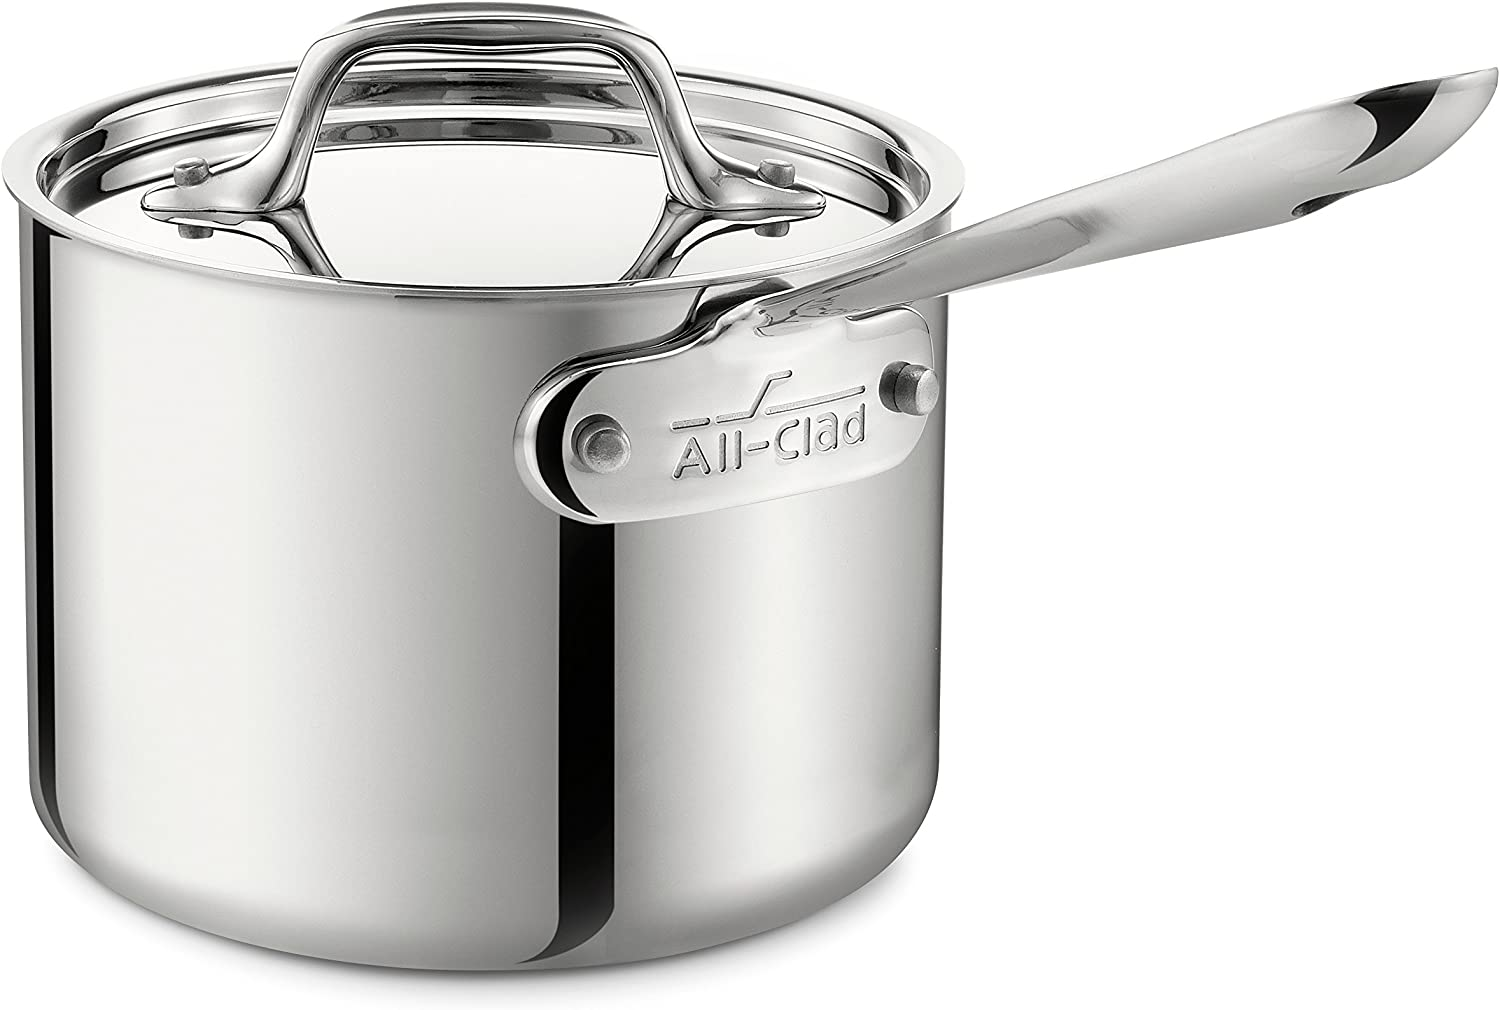 All-Clad Stainless Steel Sauce Pan with Lid Cookware, 2-Quart, Silver,4202